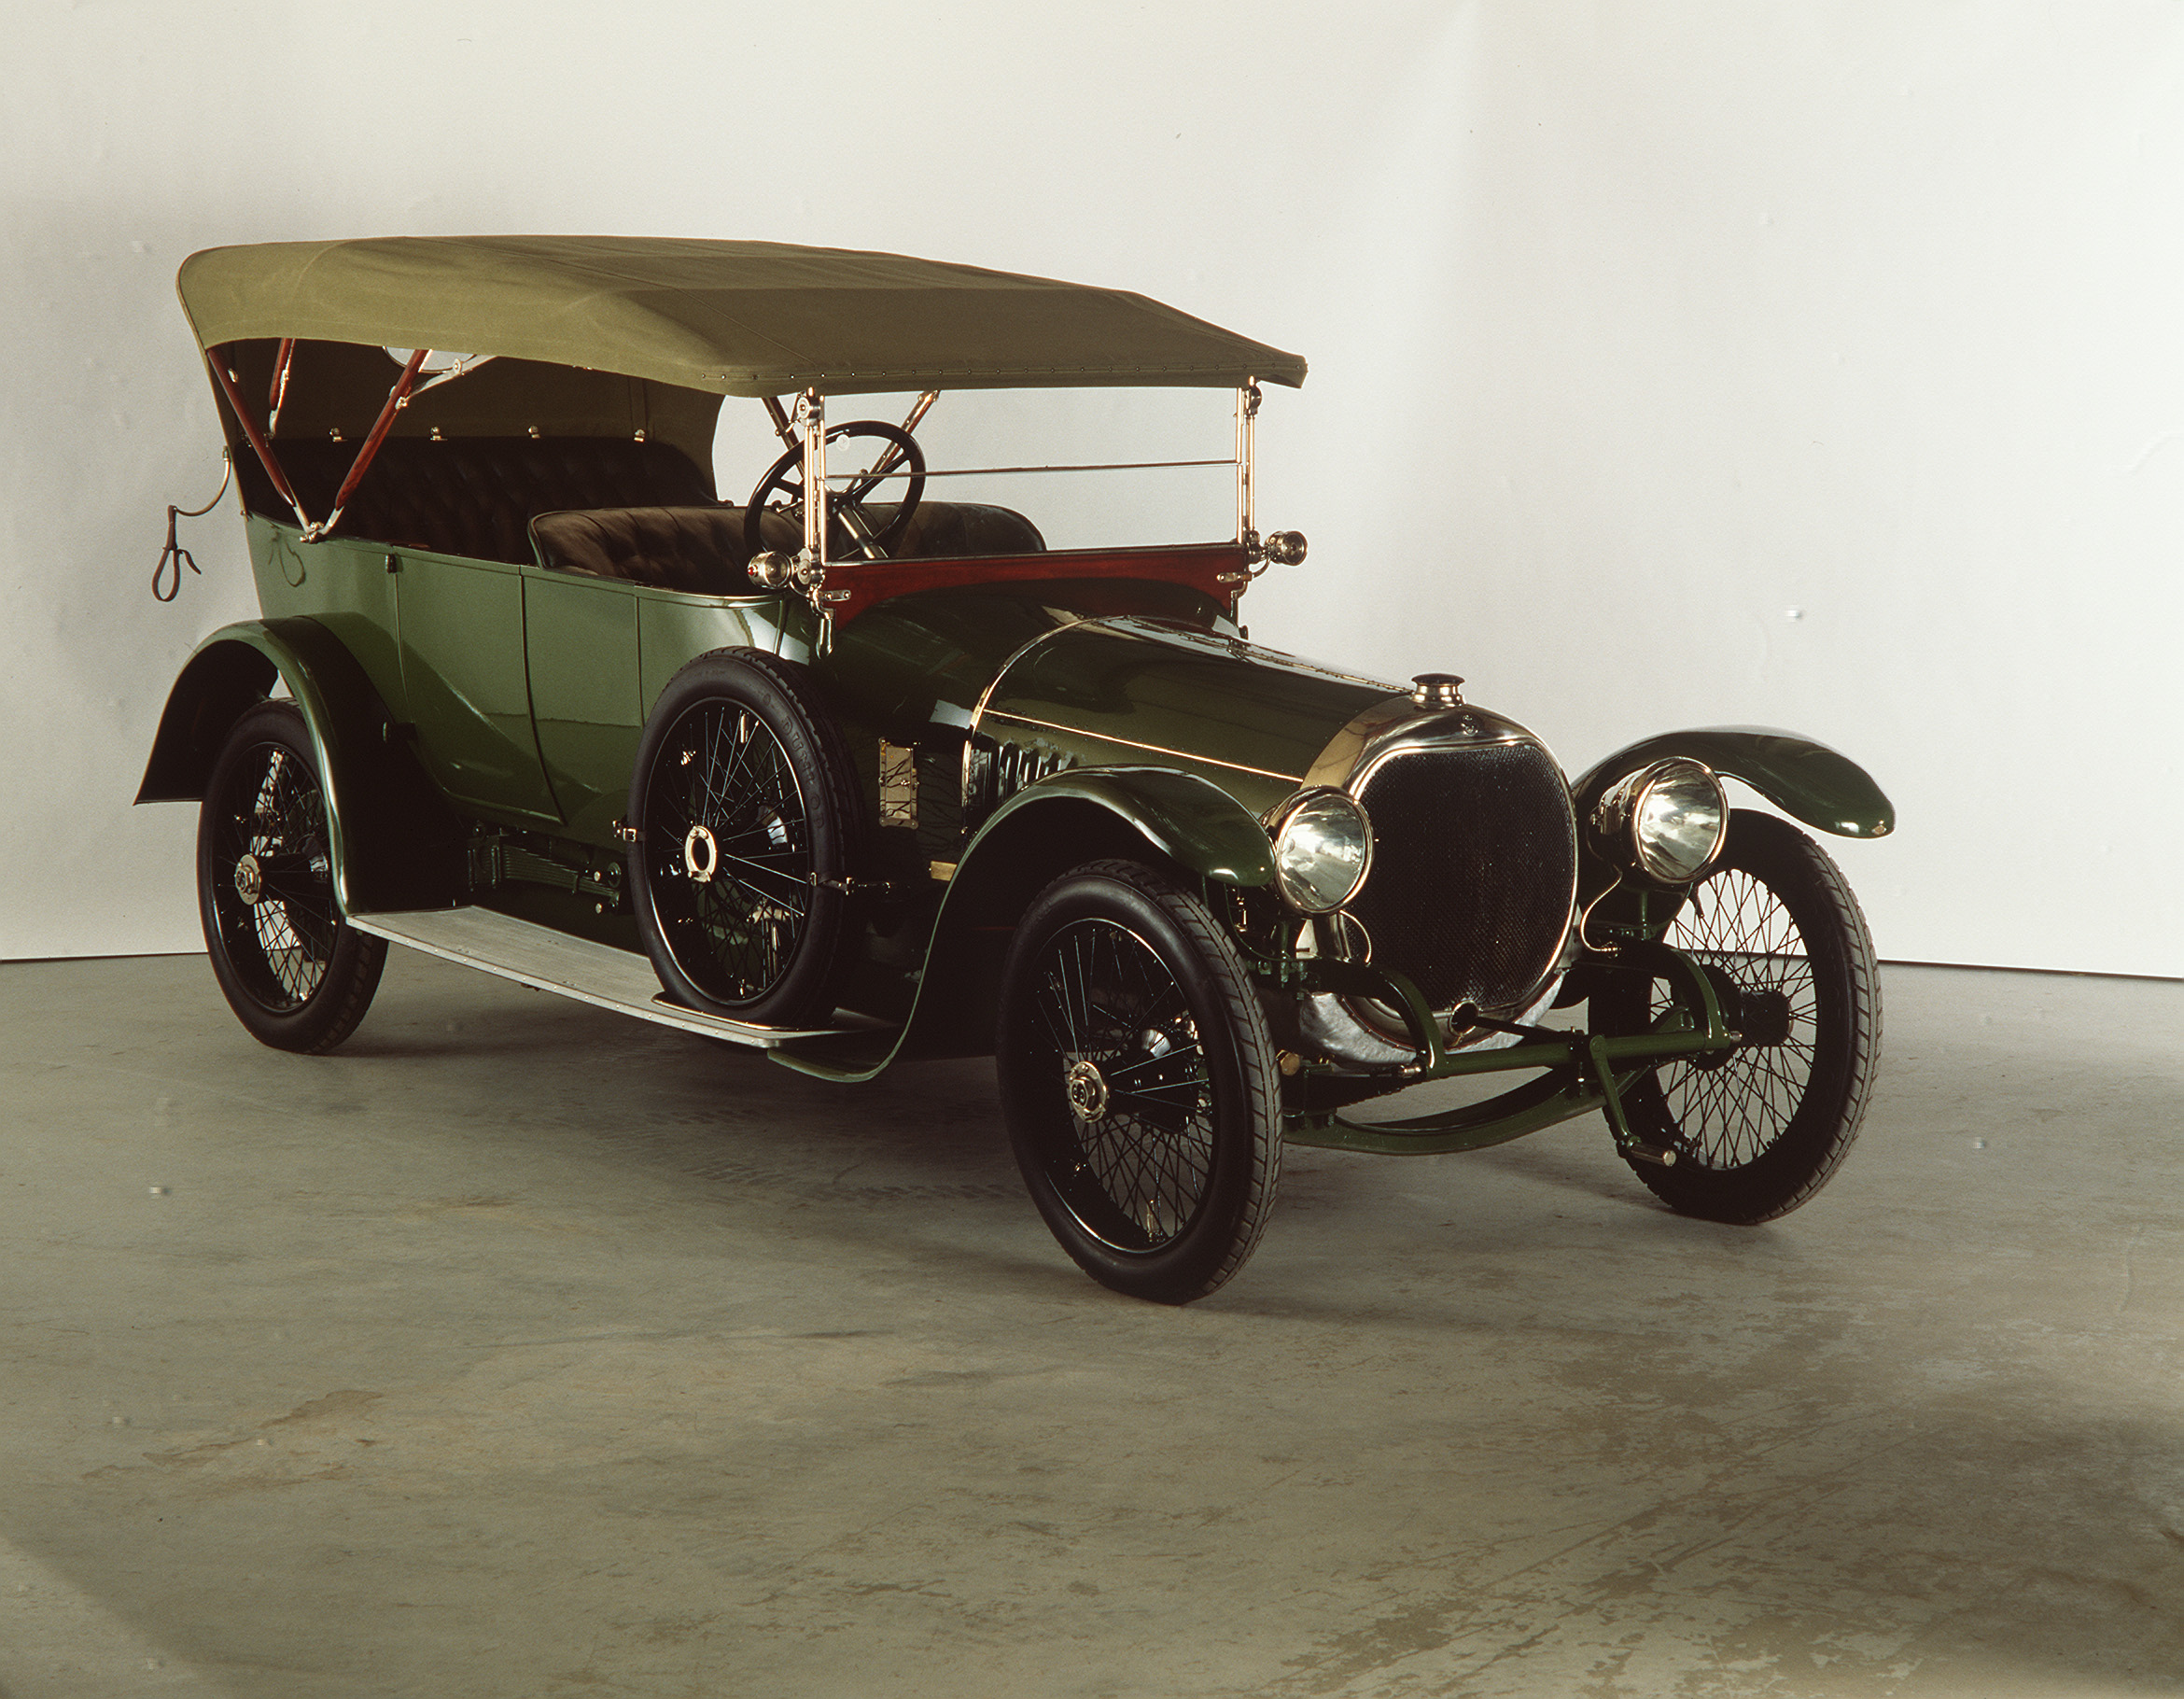 A black and green 1910s-era car with an open-top carriage and convertible roof-covering. The wheels of the car are very narrow yet have a wide diameter giving the car a high-set seating carriage.